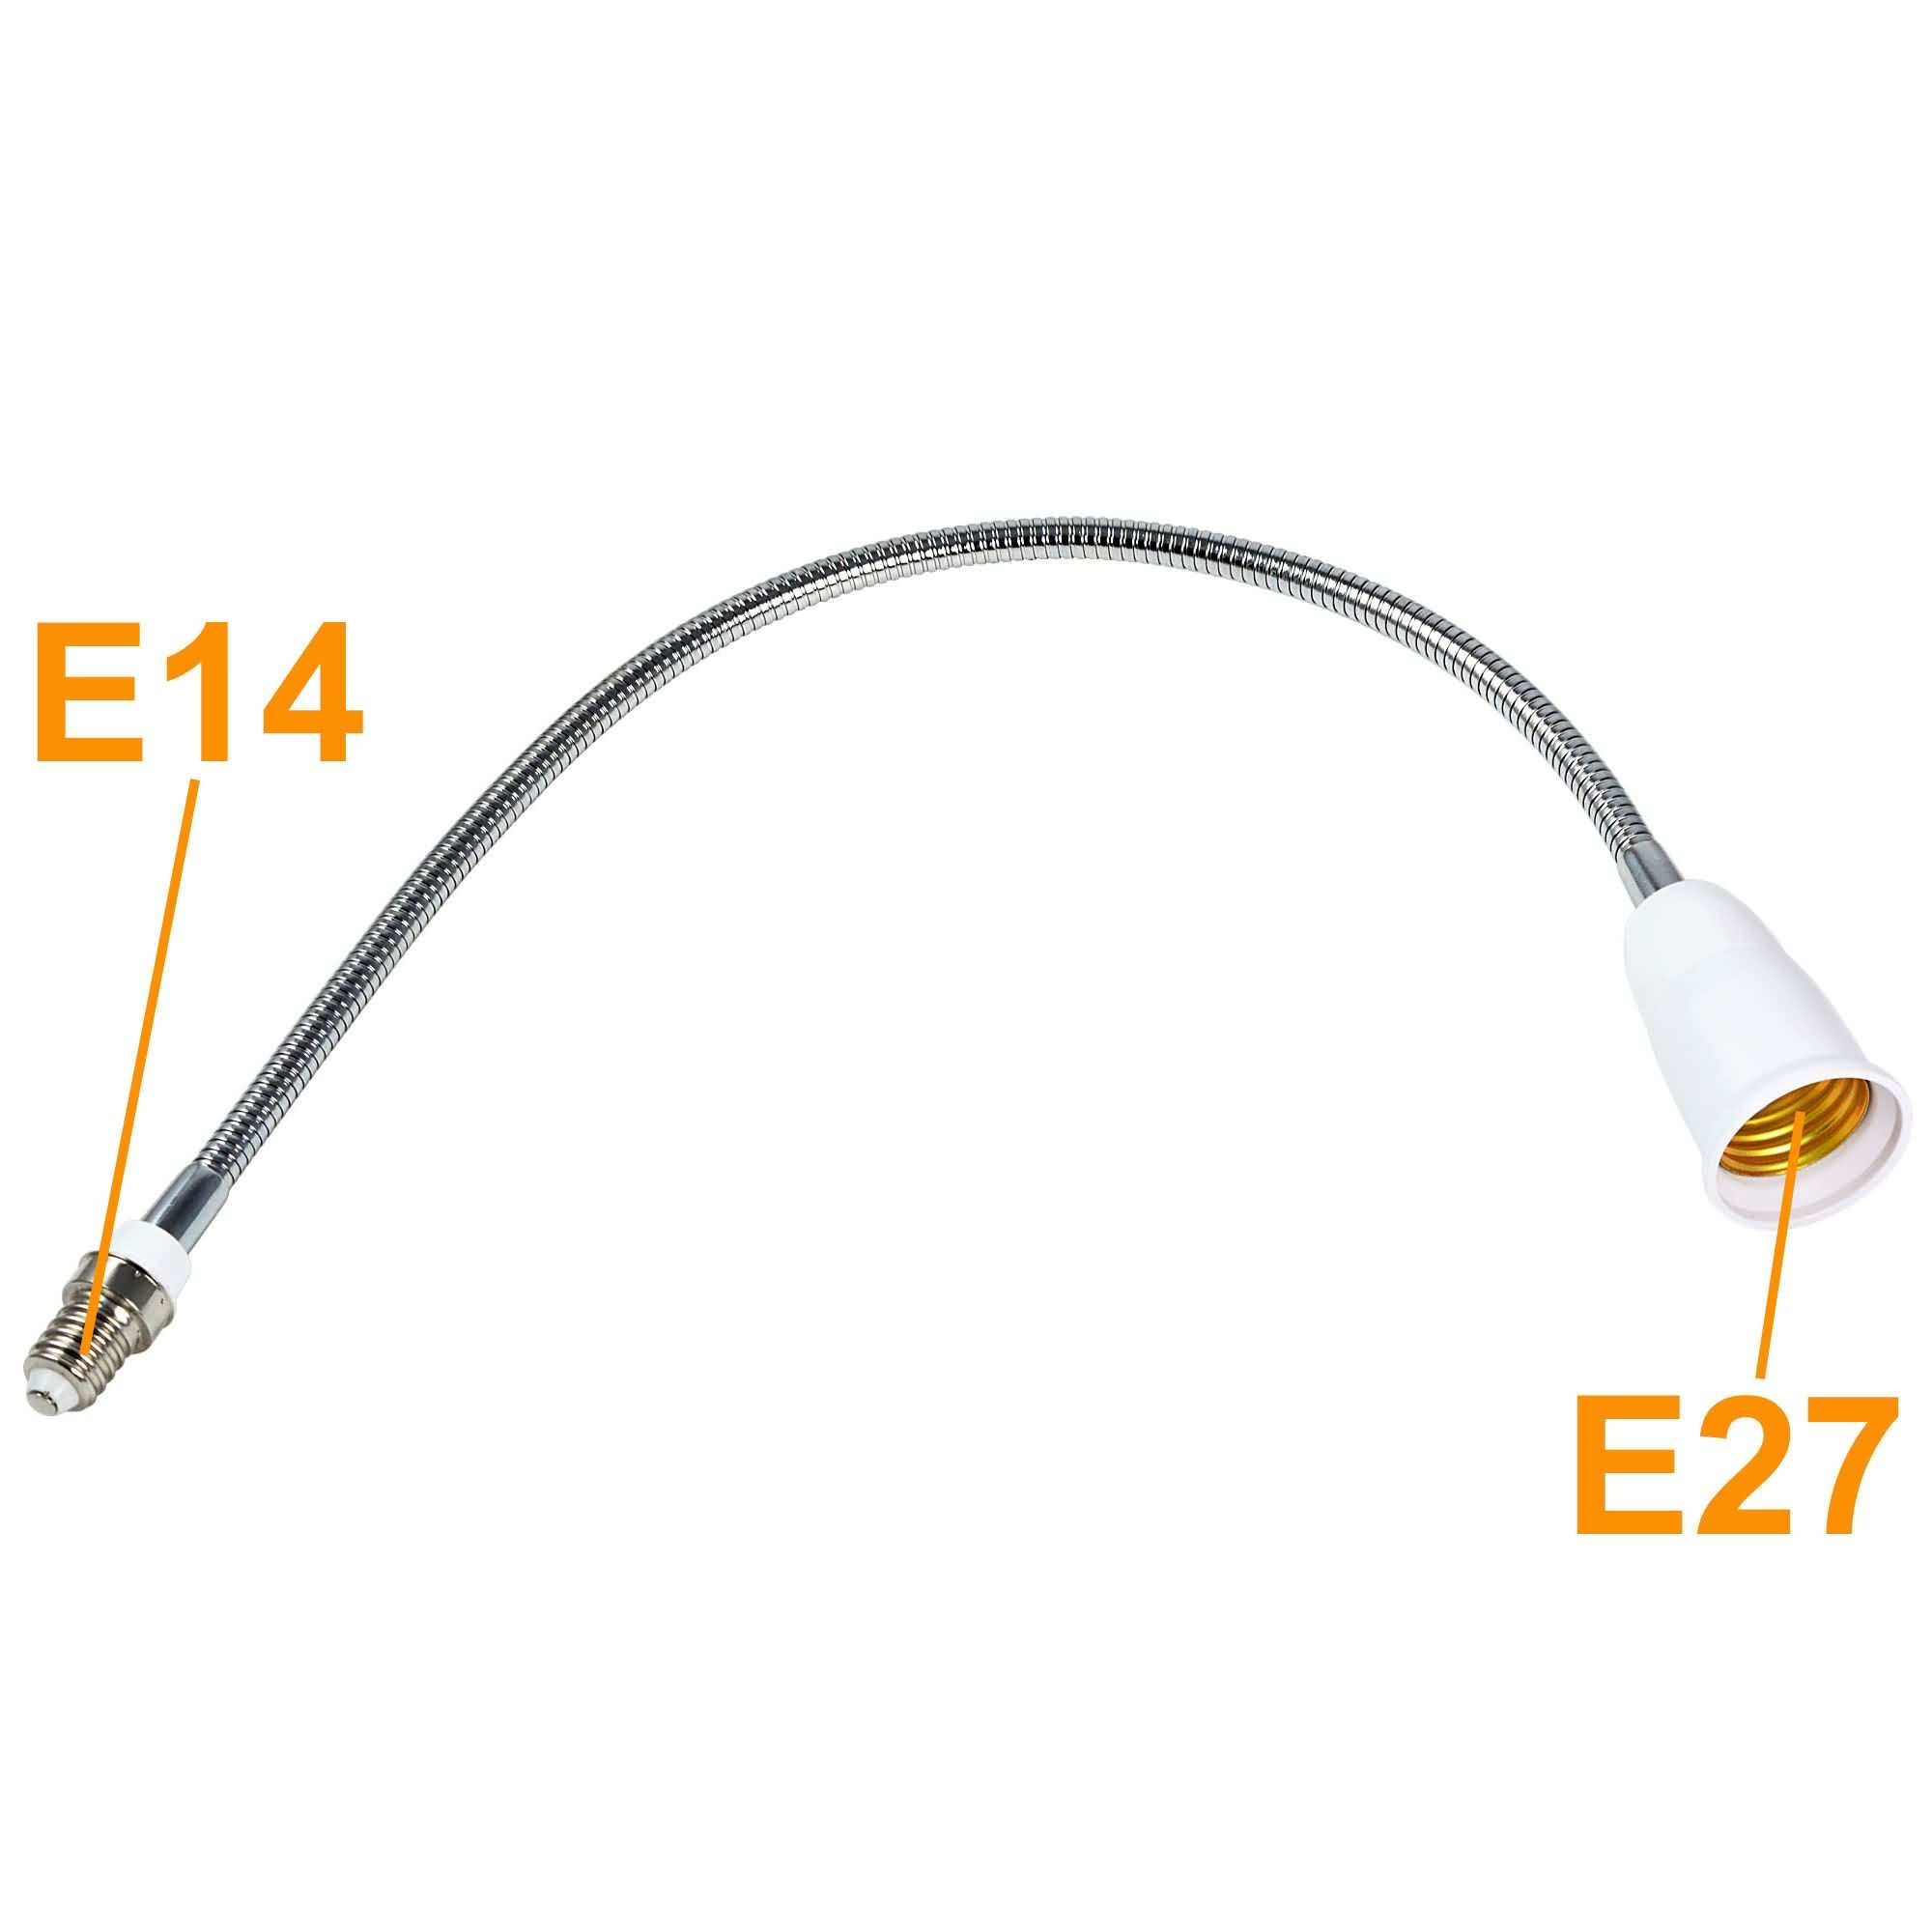 E27 E14 Mengsled Mengs 492mm E14 To E27 Light Bulb Flexible